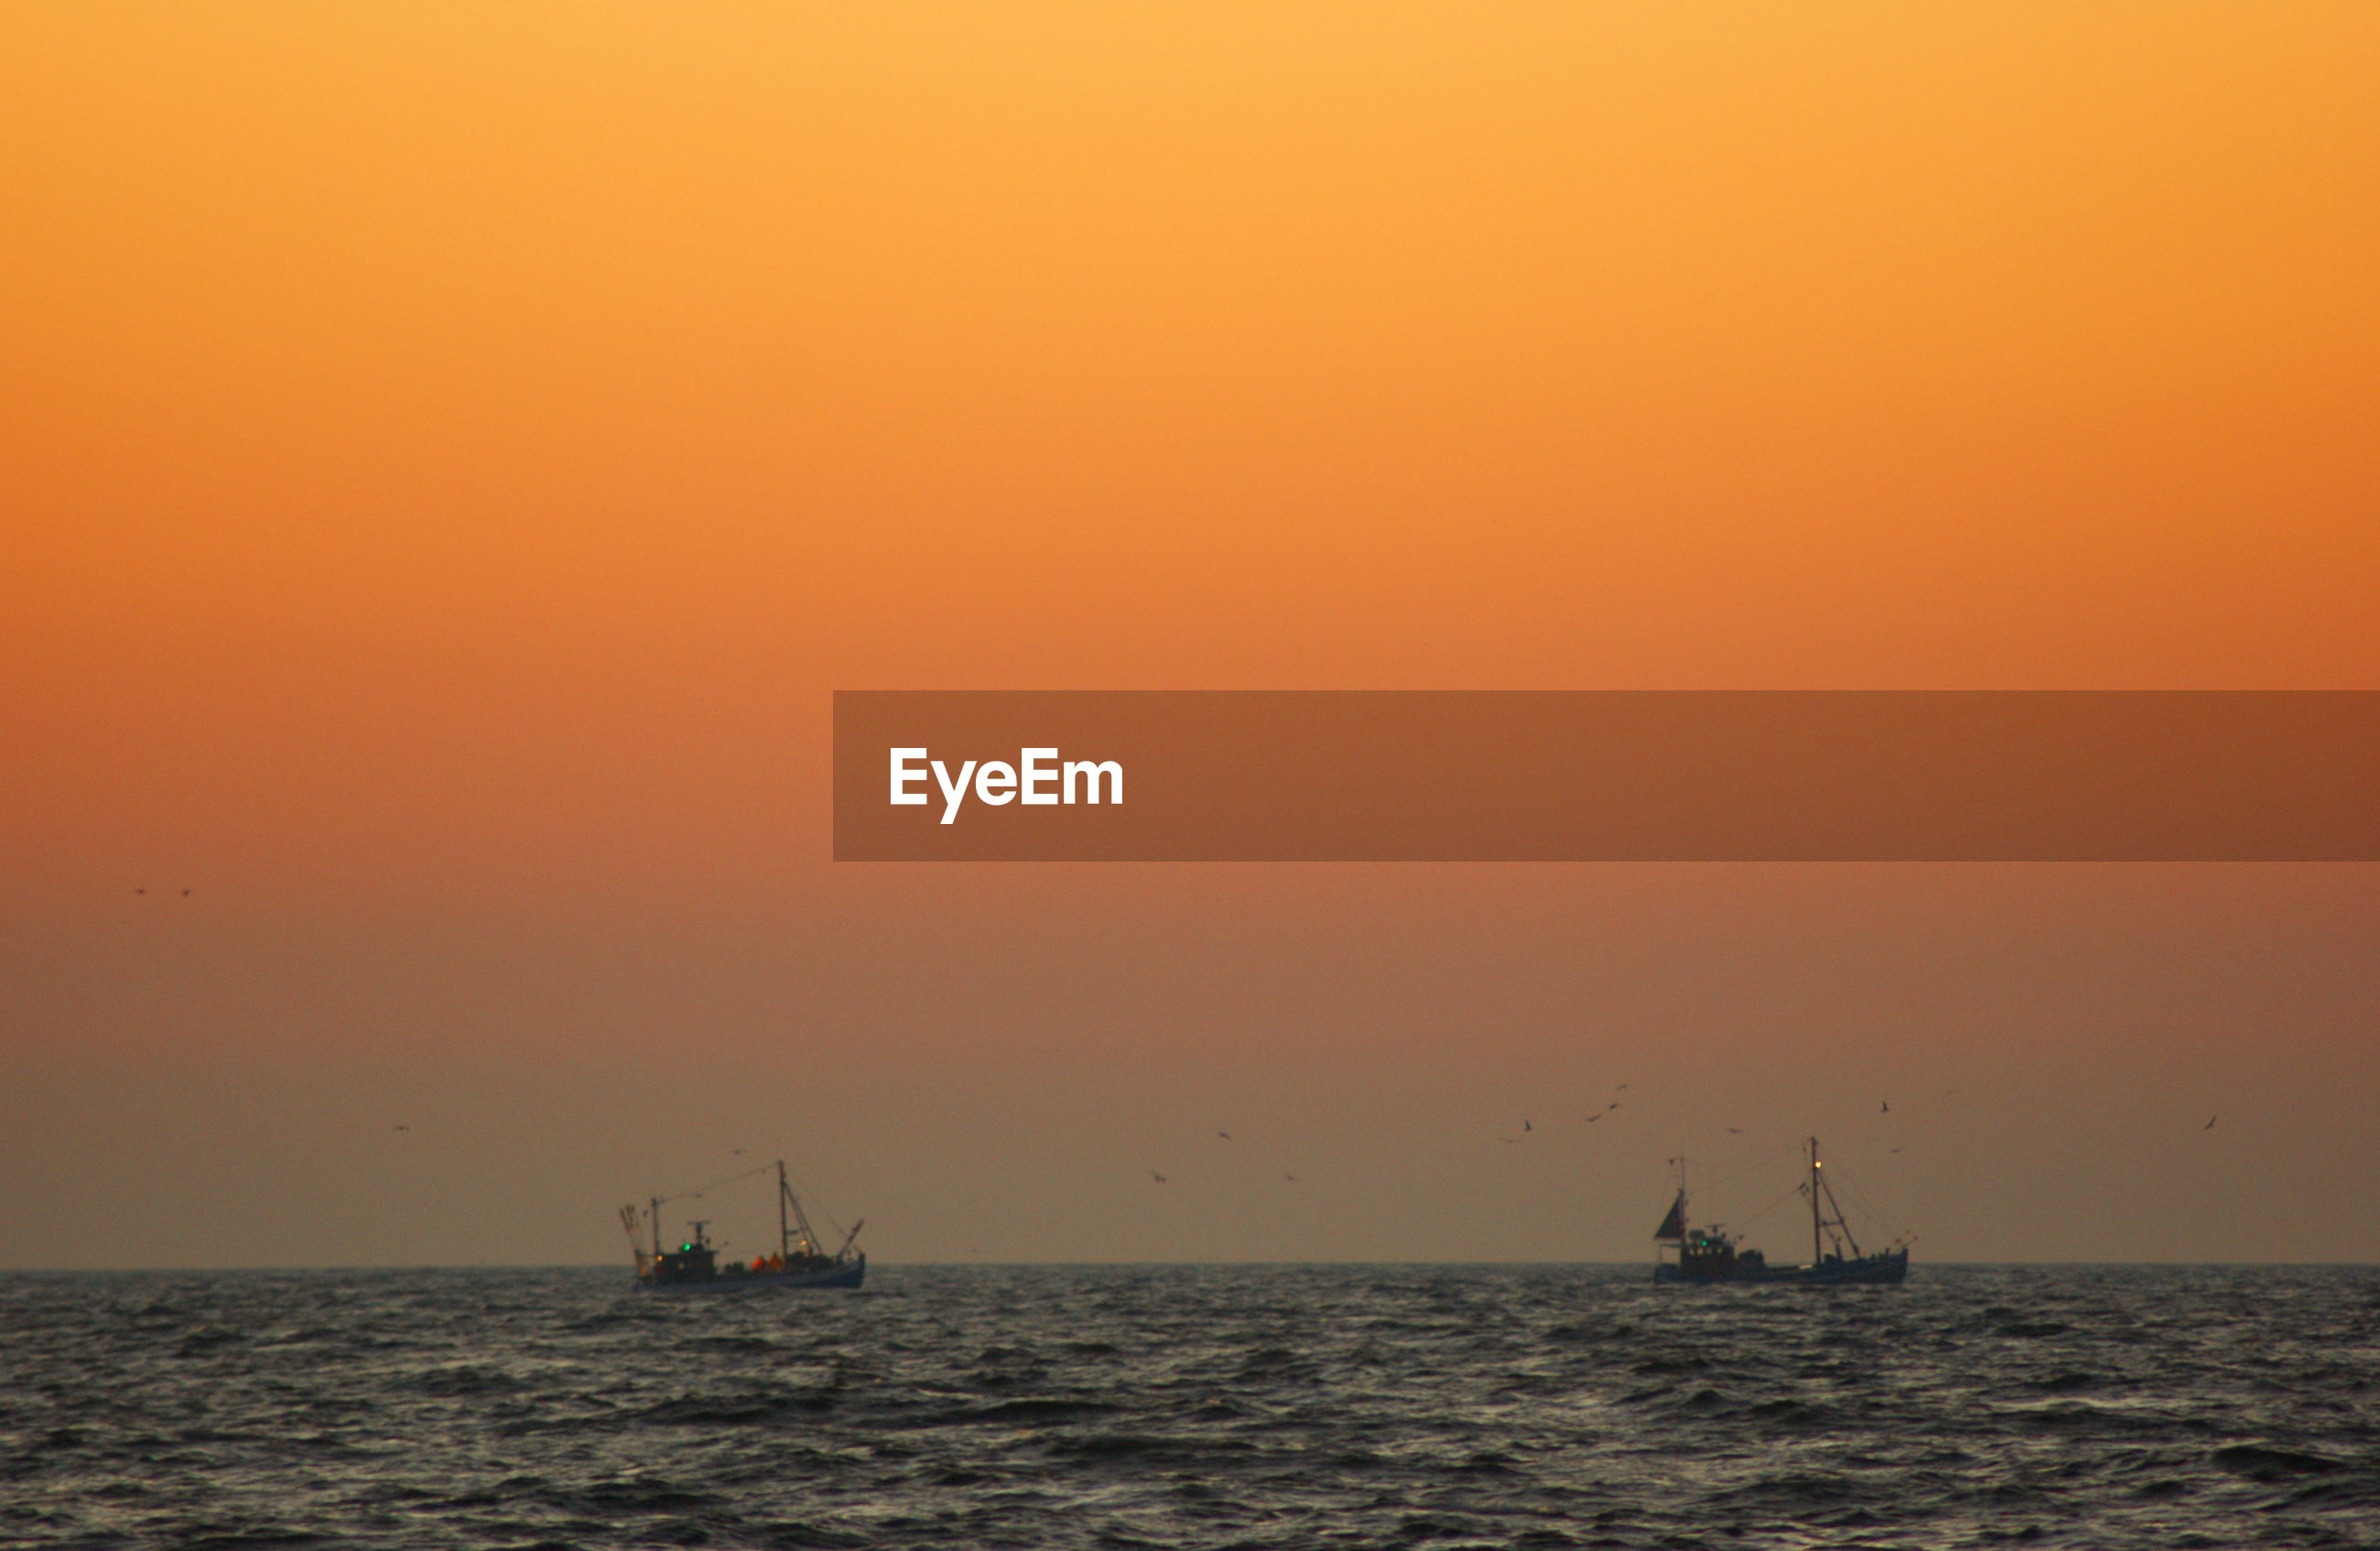 SHIP SAILING IN SEA AGAINST SKY DURING SUNSET